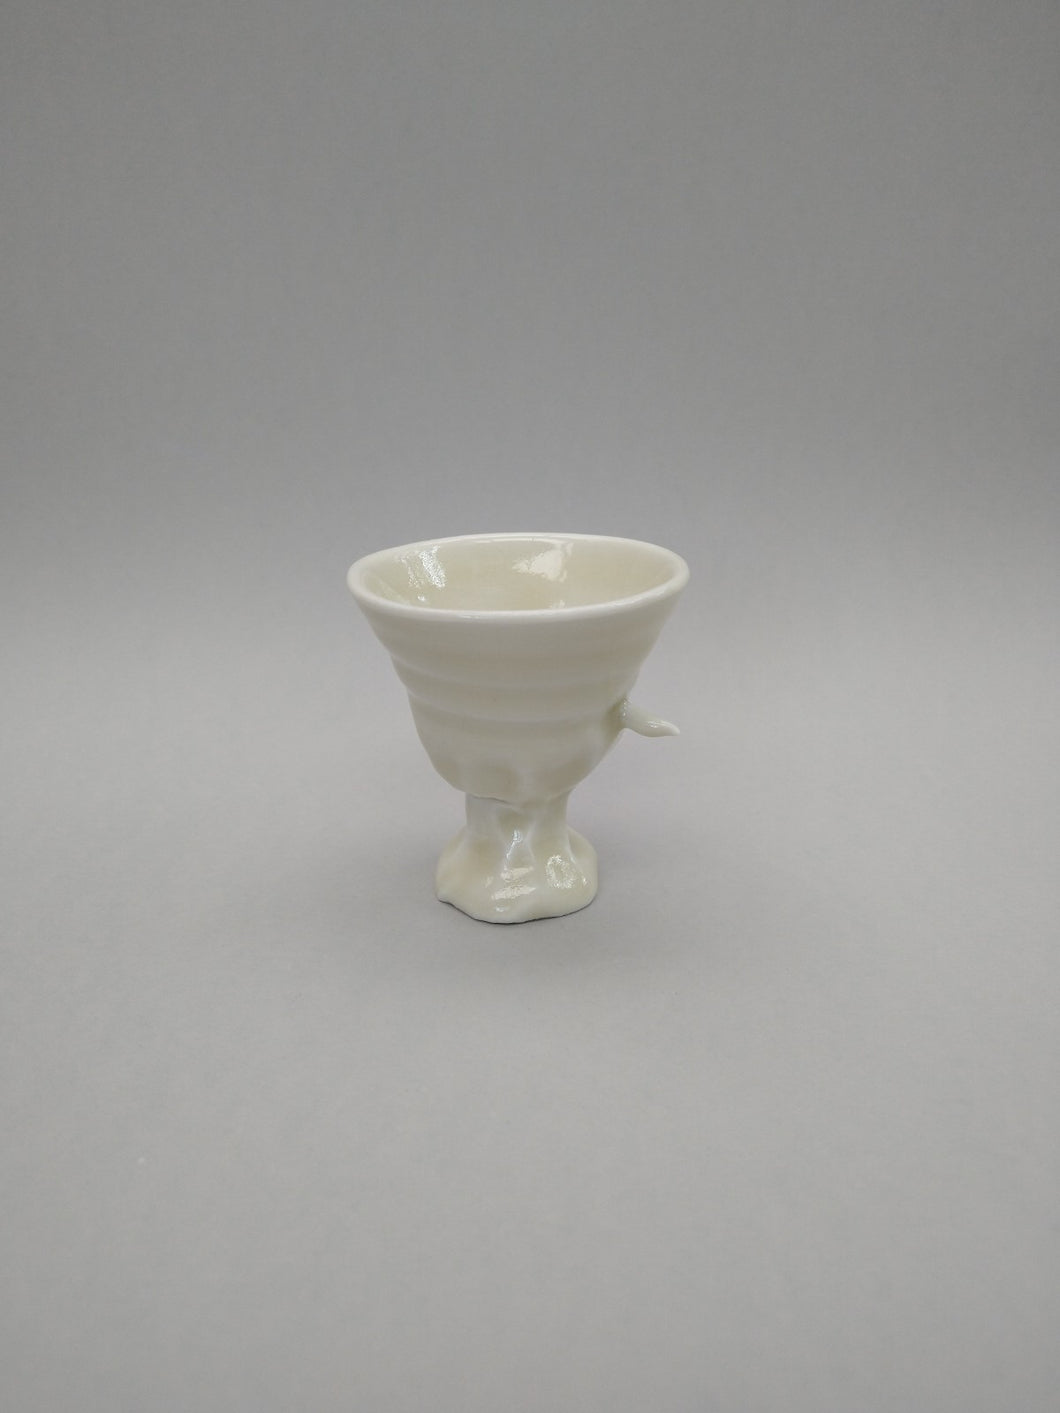 Impaled Porcelain Pain Cup with Squishy Foot & Green Tea Celadon